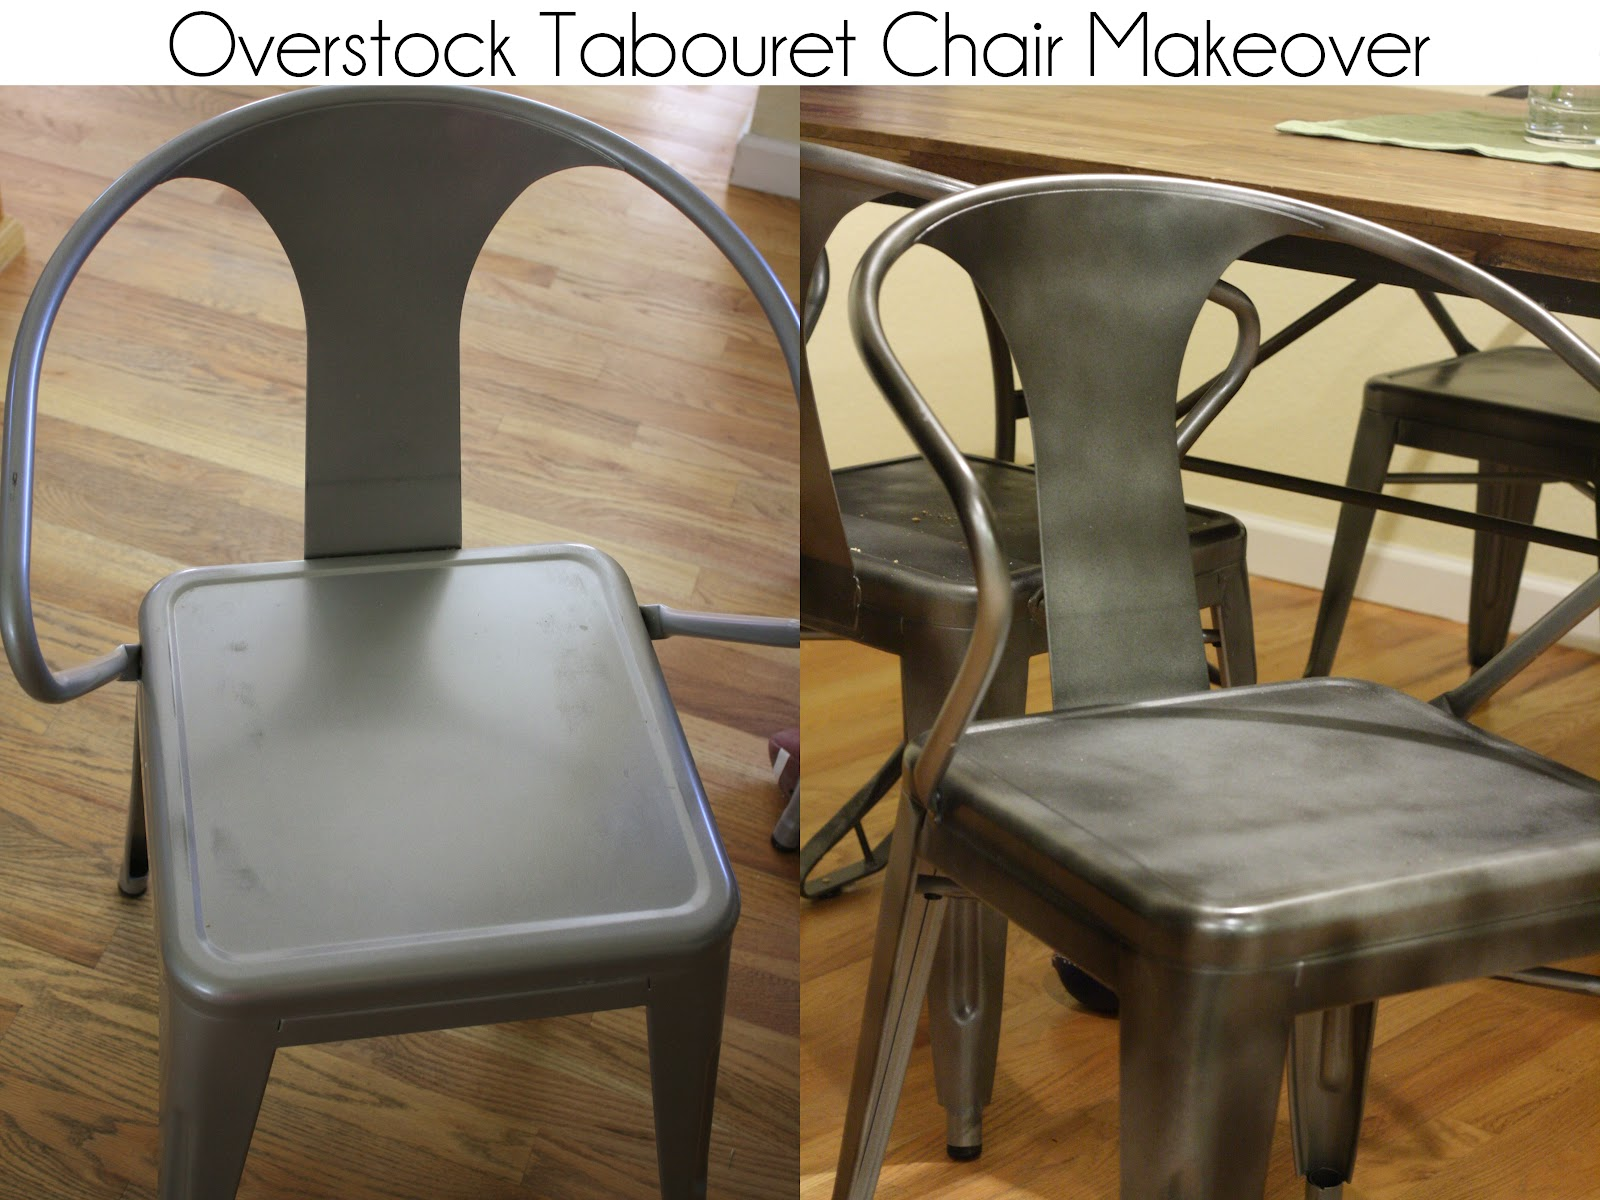 Kitchen Chair Makeover {Overstock Tabouret Chairs Painted}